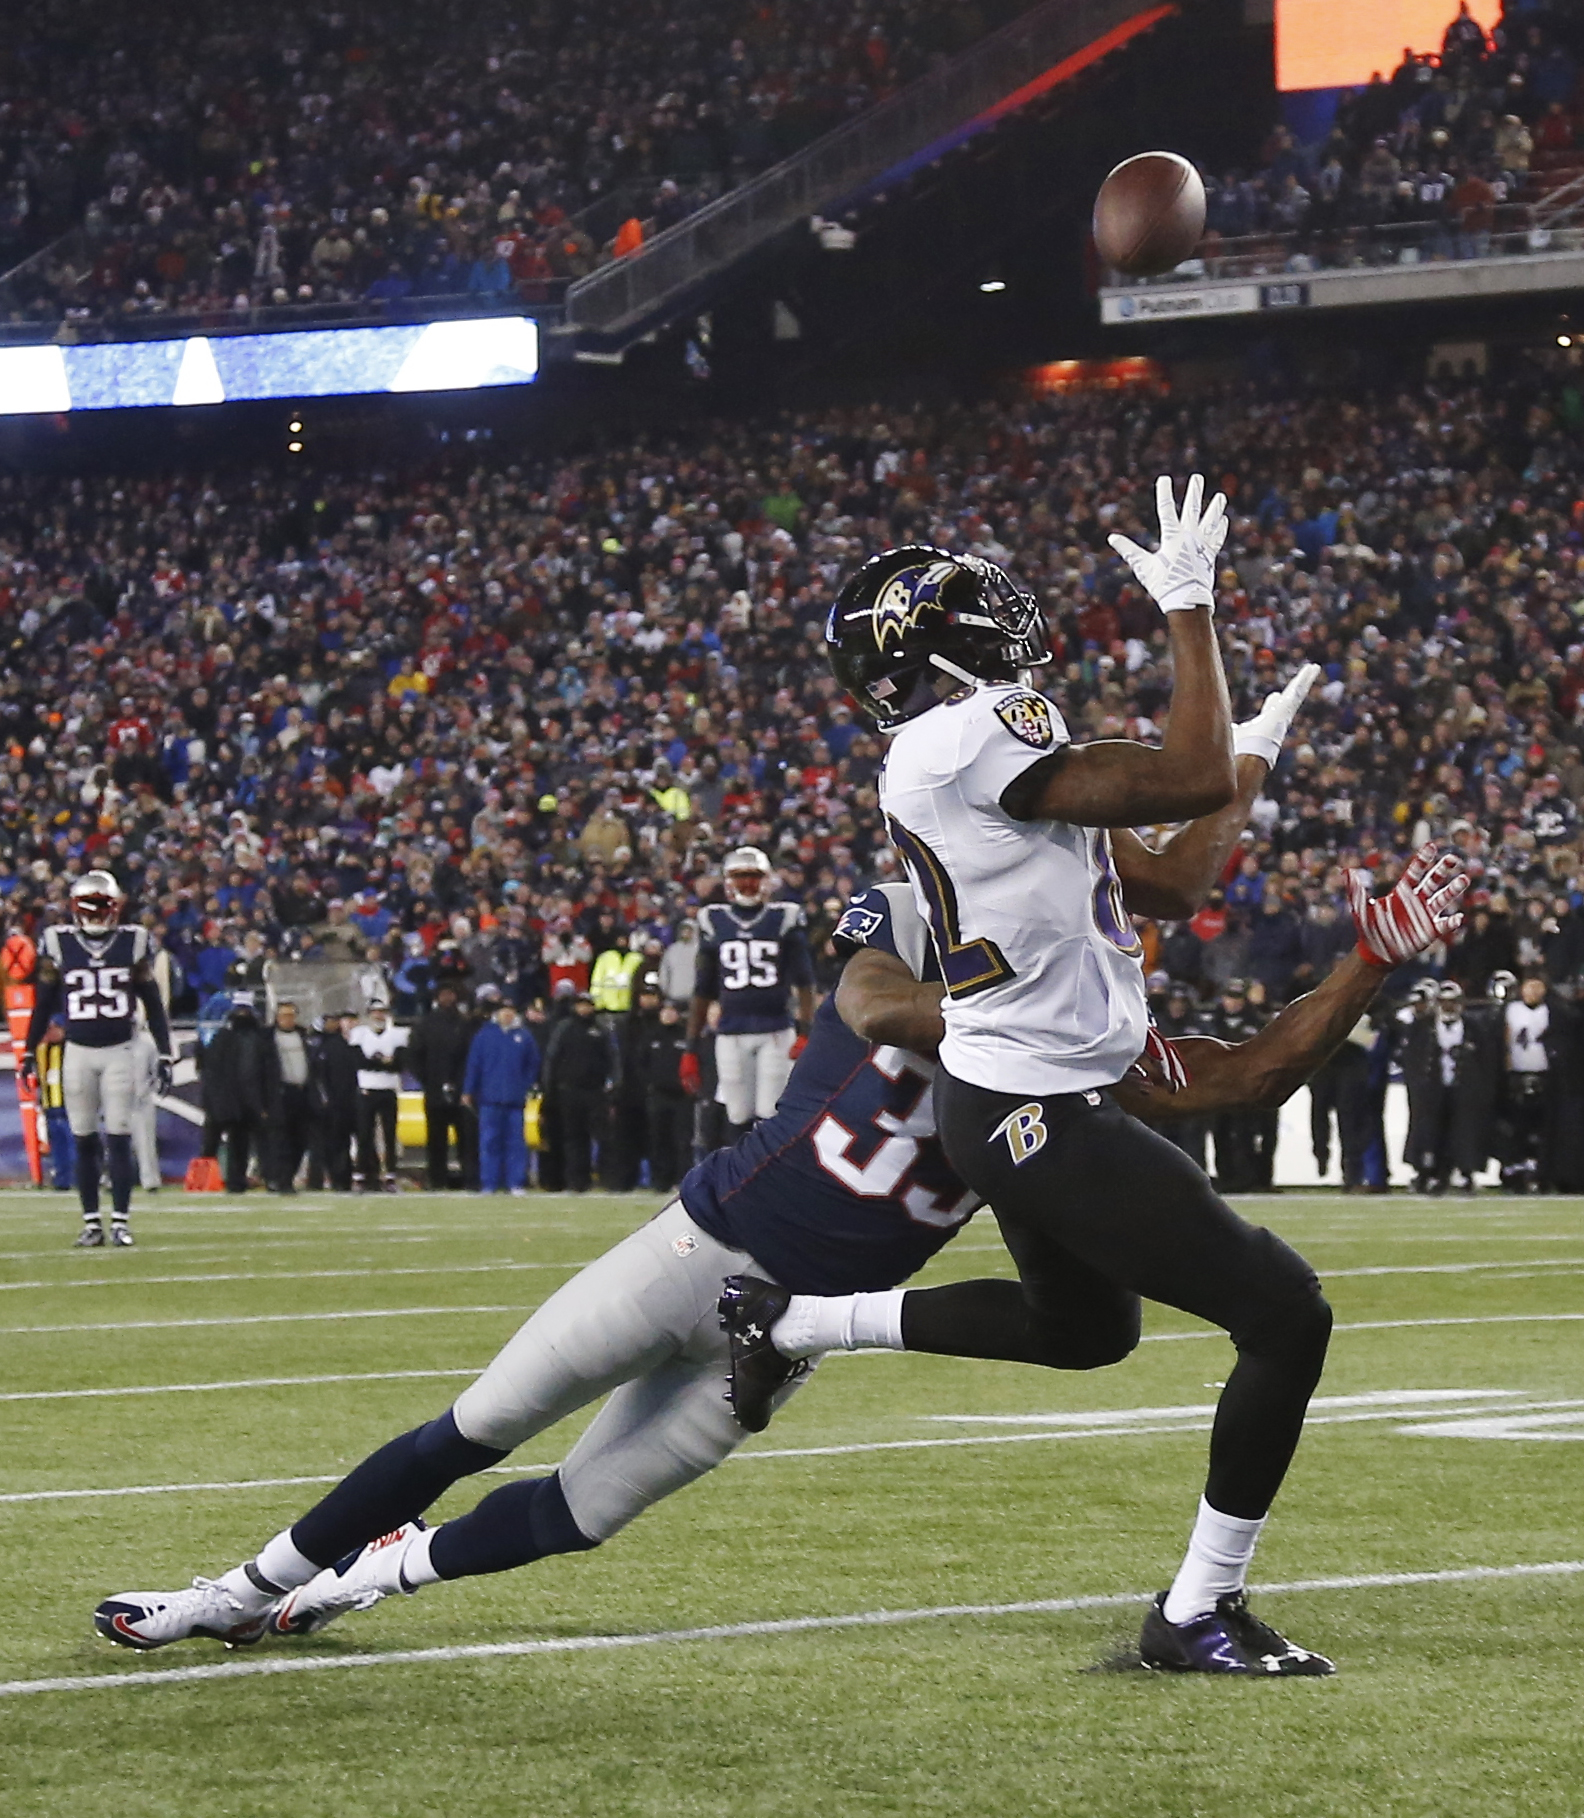 Baltimore Ravens wide receiver Torrey Smith (82) catches a pass in front of New England Patriots cornerback Brandon Browner (39) in the second half of an NFL divisional playoff football game Saturday, Jan. 10, 2015, in Foxborough, Mass.